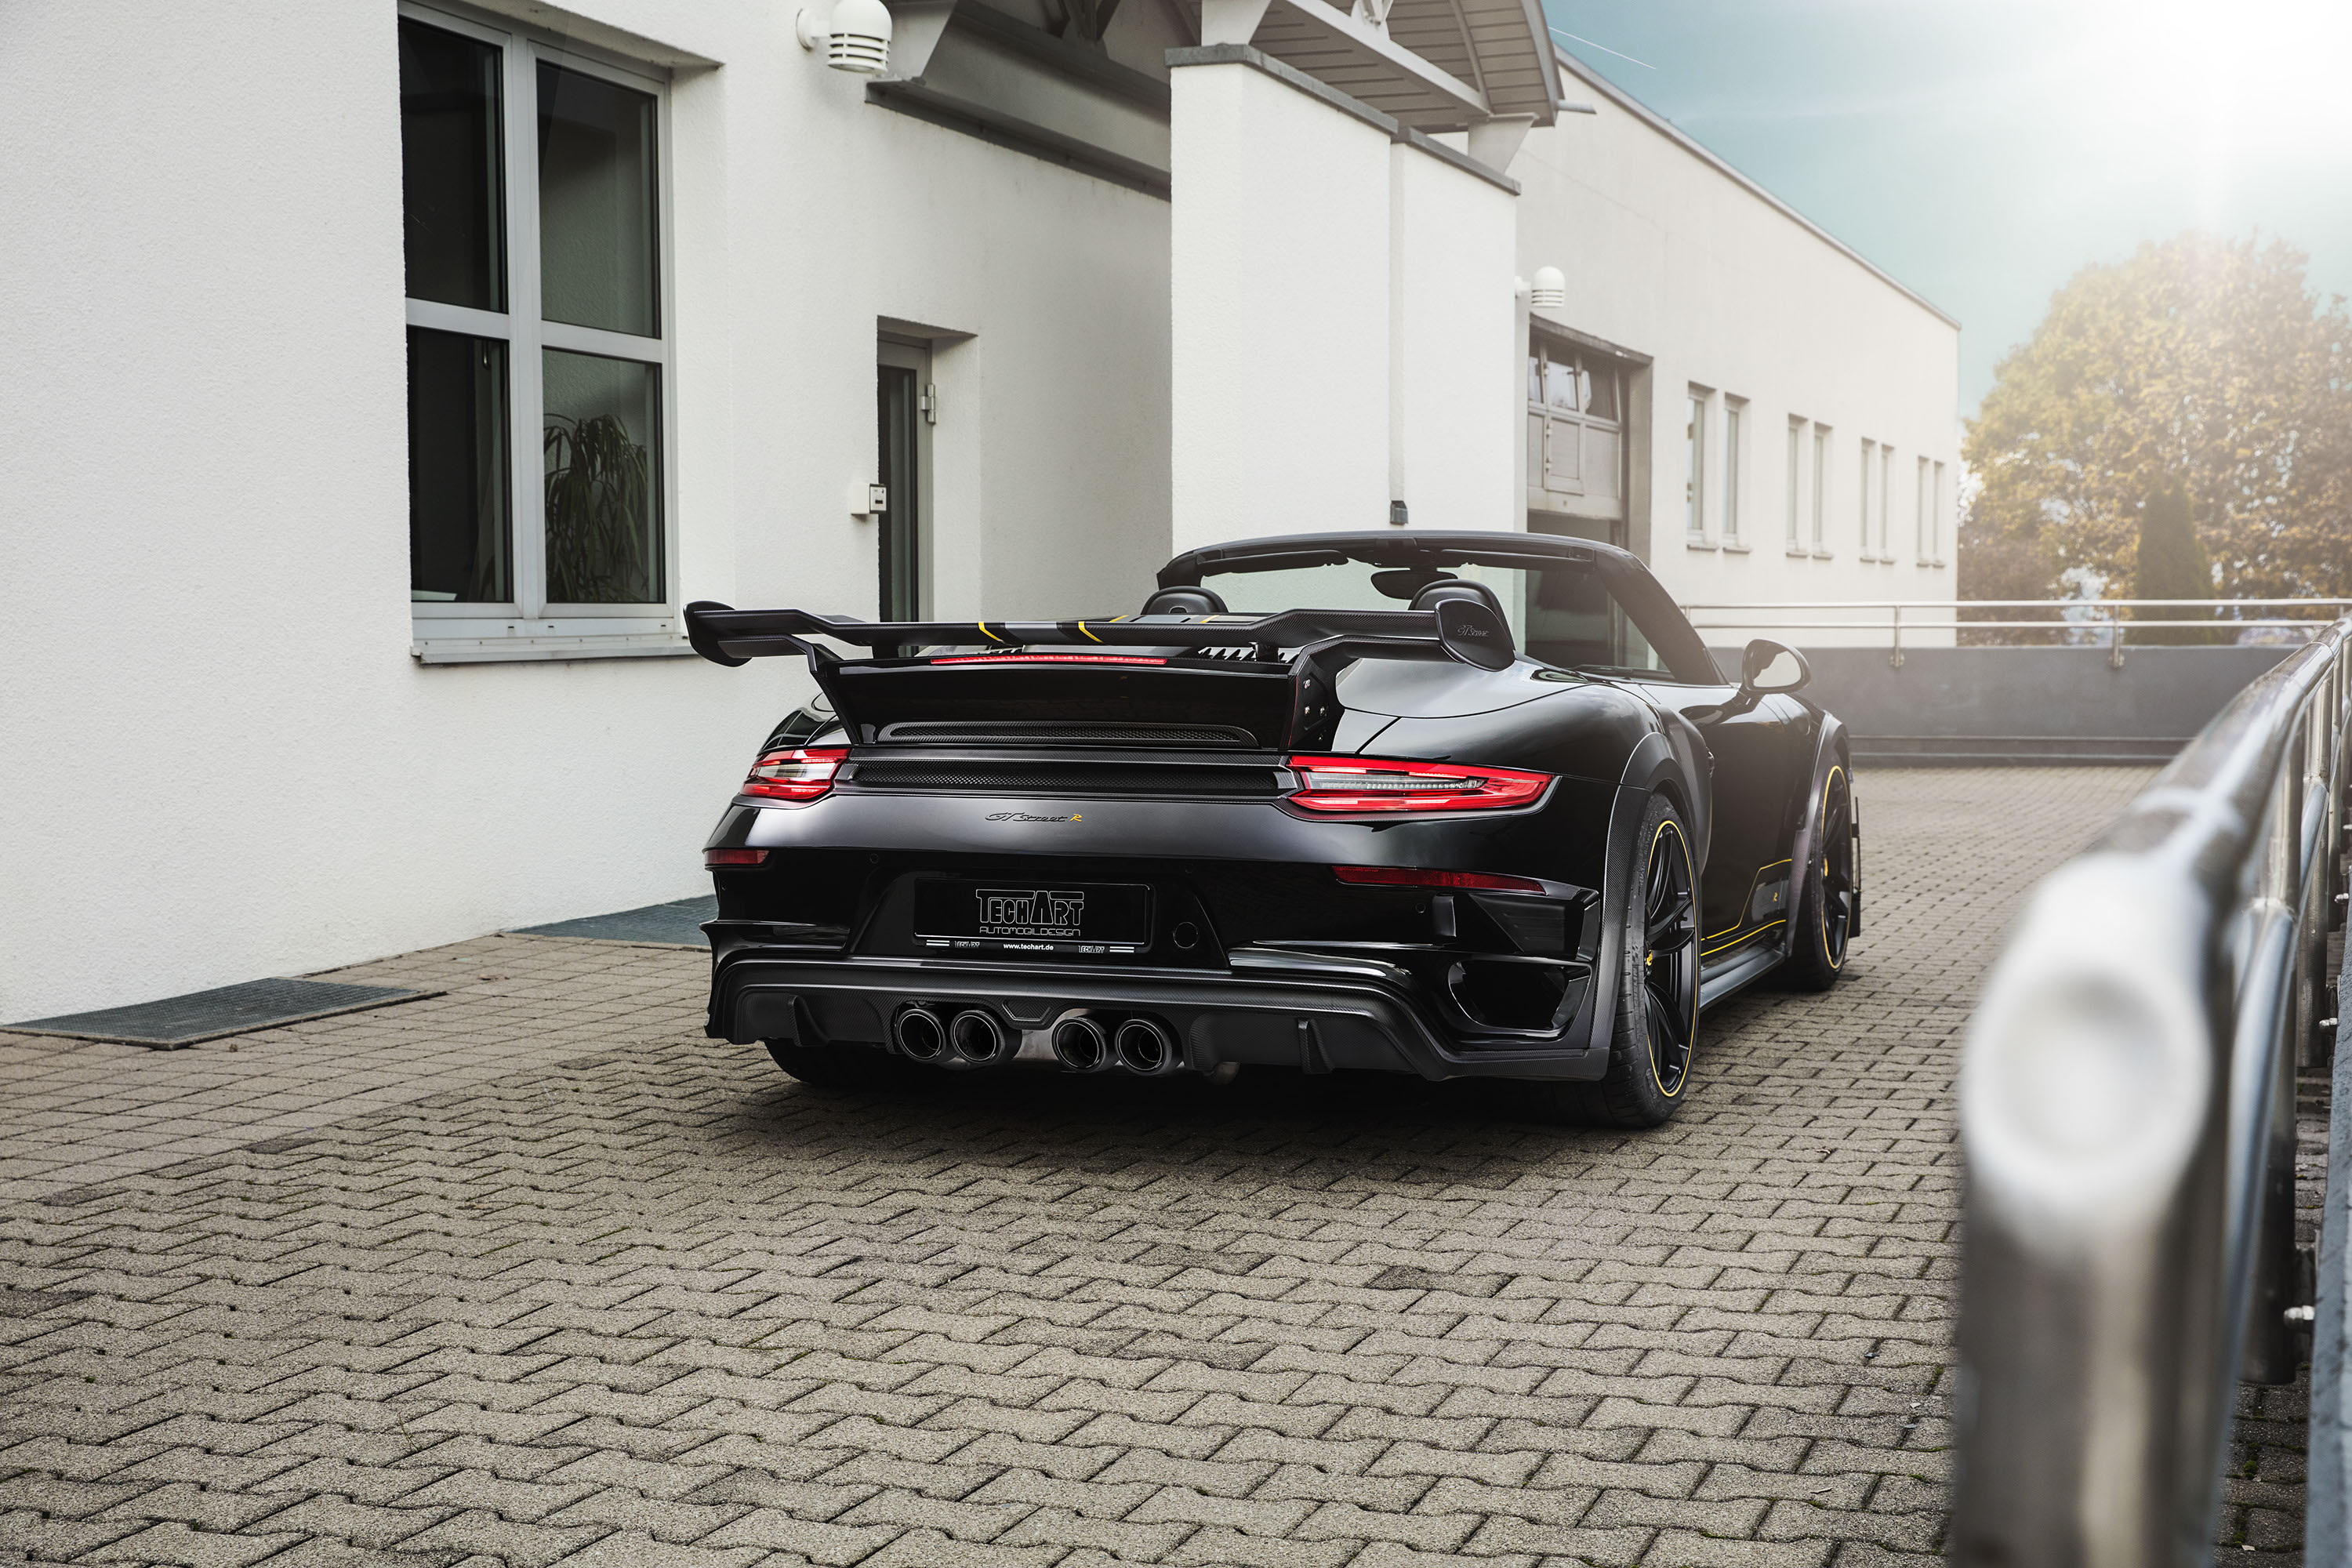 TECHART_GTstreet_R_Cabriolet_exterior_6 Remarkable Techart Porsche 911 Gt2 Gtstreet Rs Cars Trend